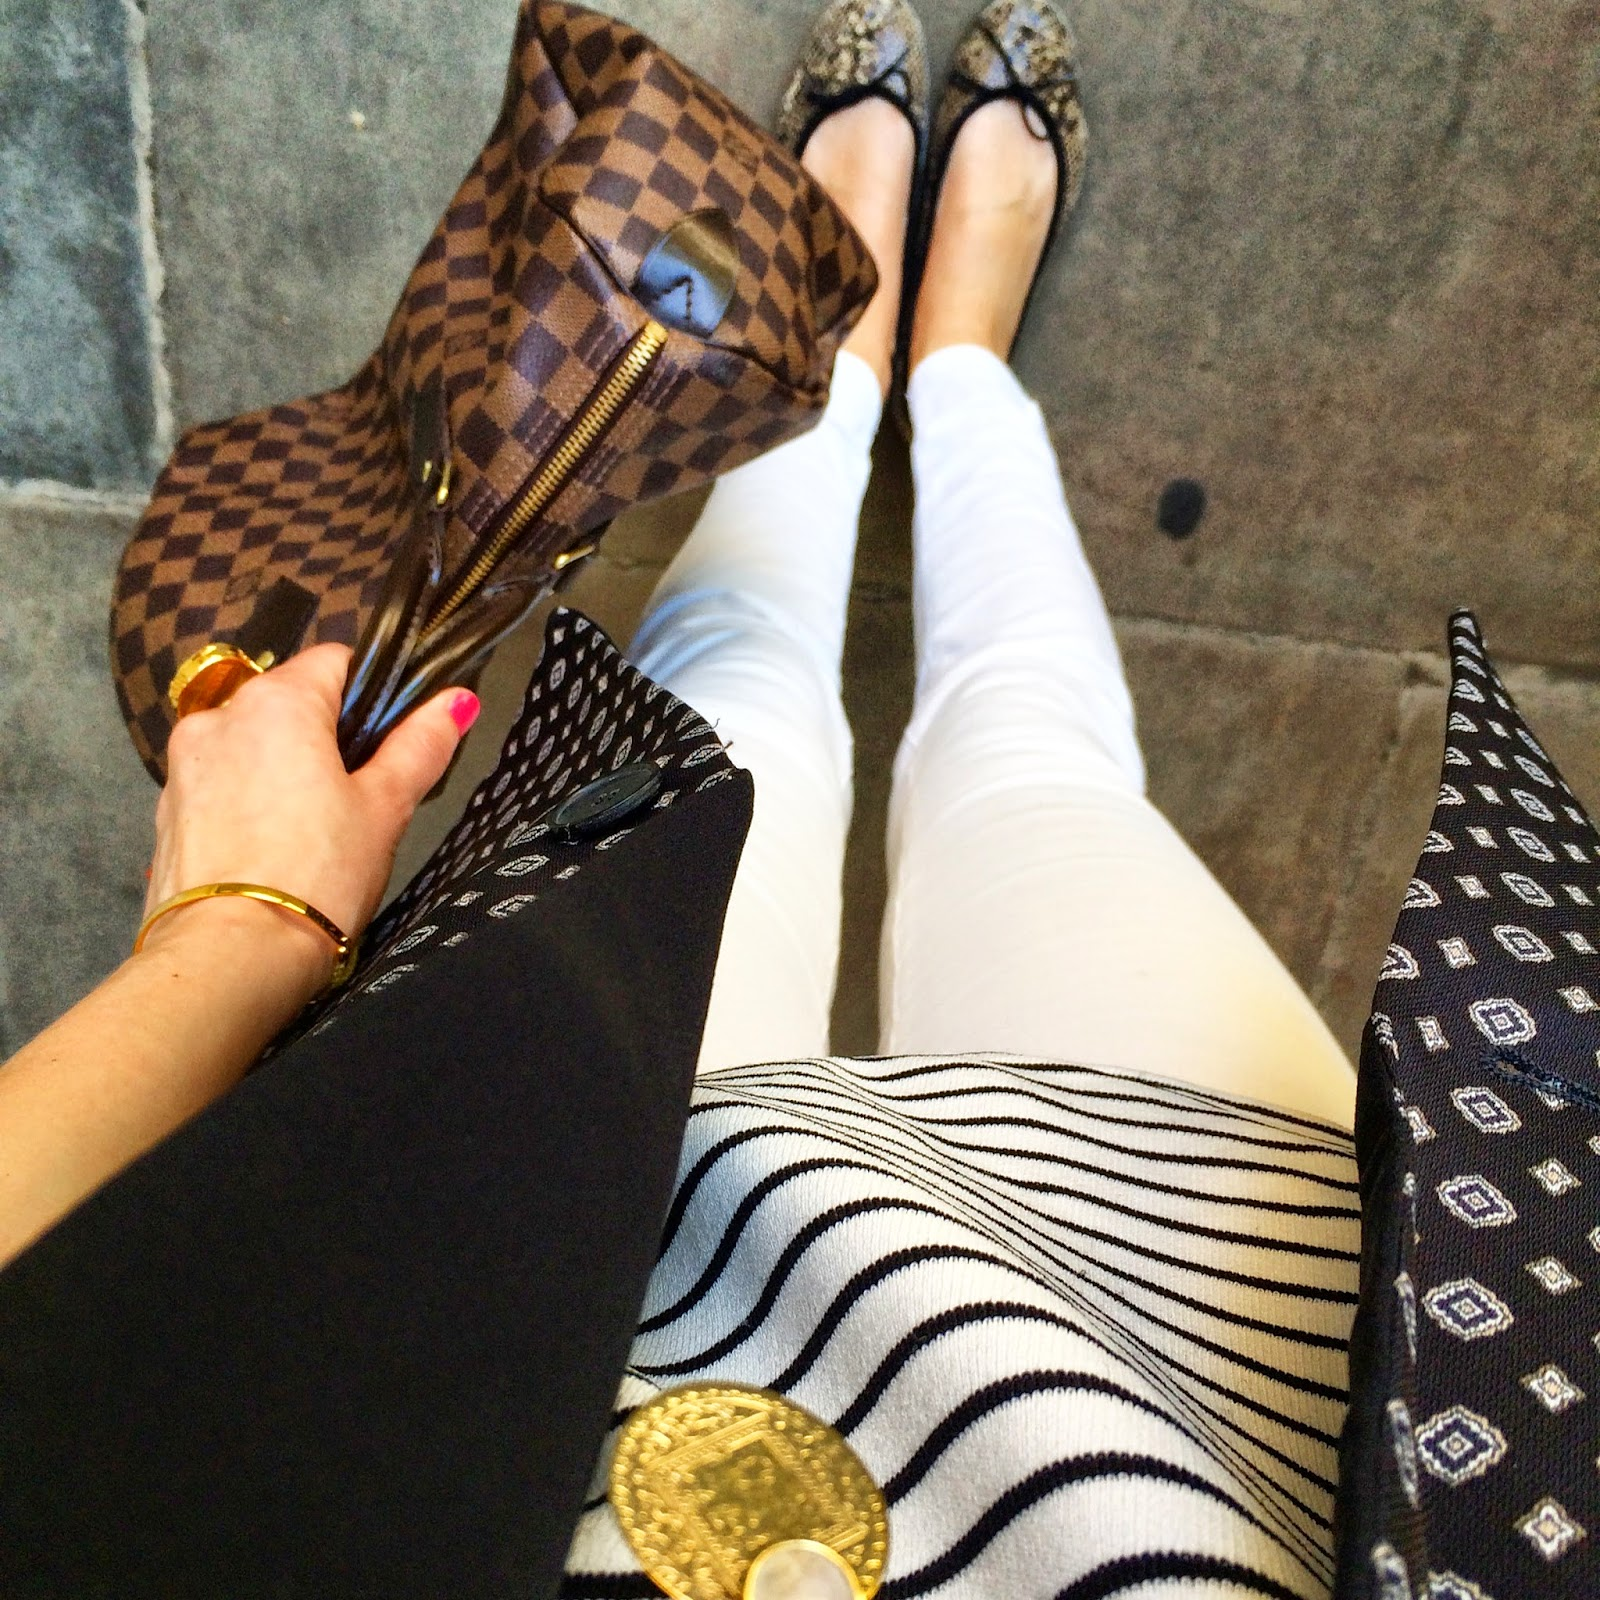 monica vinader, stripes, print mix, mango blazer, louis vuitton, j brand jeans, white jeans, french sole, ballet flats